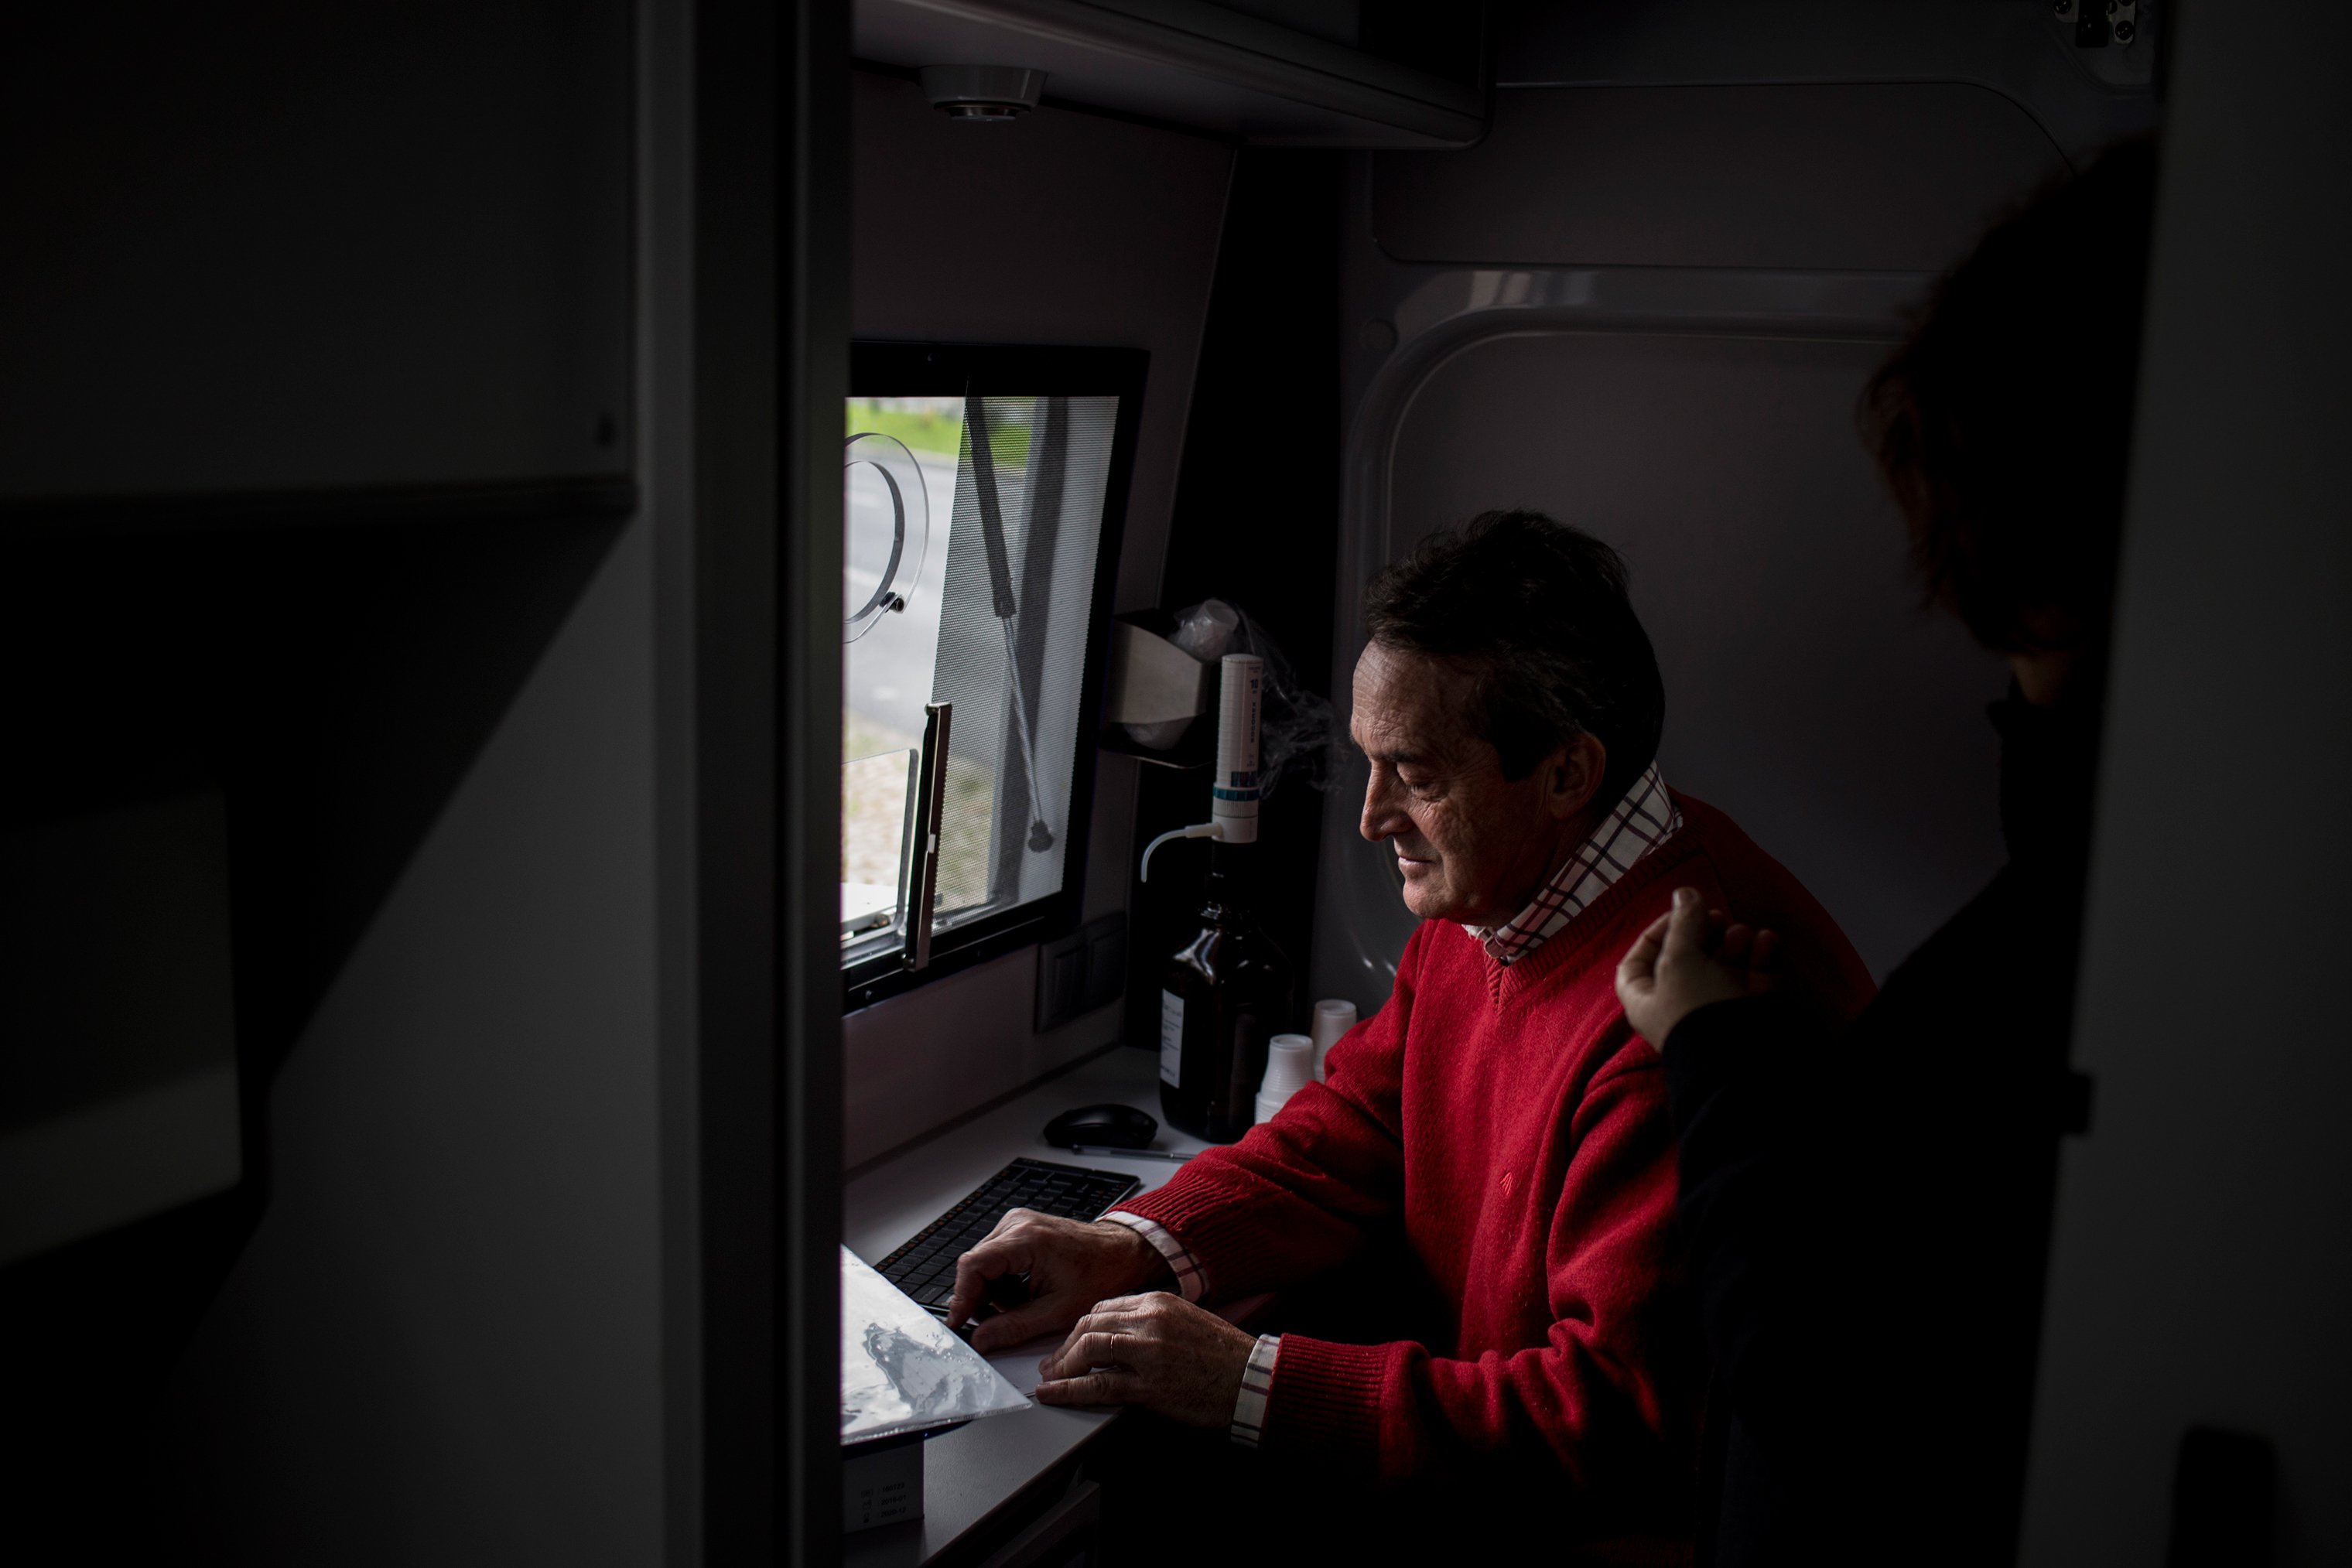 João, a 60-year old nurse, searches for a patient's doses at a state sponsored mobile methadone clinic in Lisbon, February 9, 2017. It is operated by the Ares do Pinhal Association, and has existed since the Casal Ventoso neighborhood was demolished. The two vans administer methadone maintenance therapy to more than 1,200 people every day. Opioid users who receive this treatment on the street are healthier and safer than those who do not.